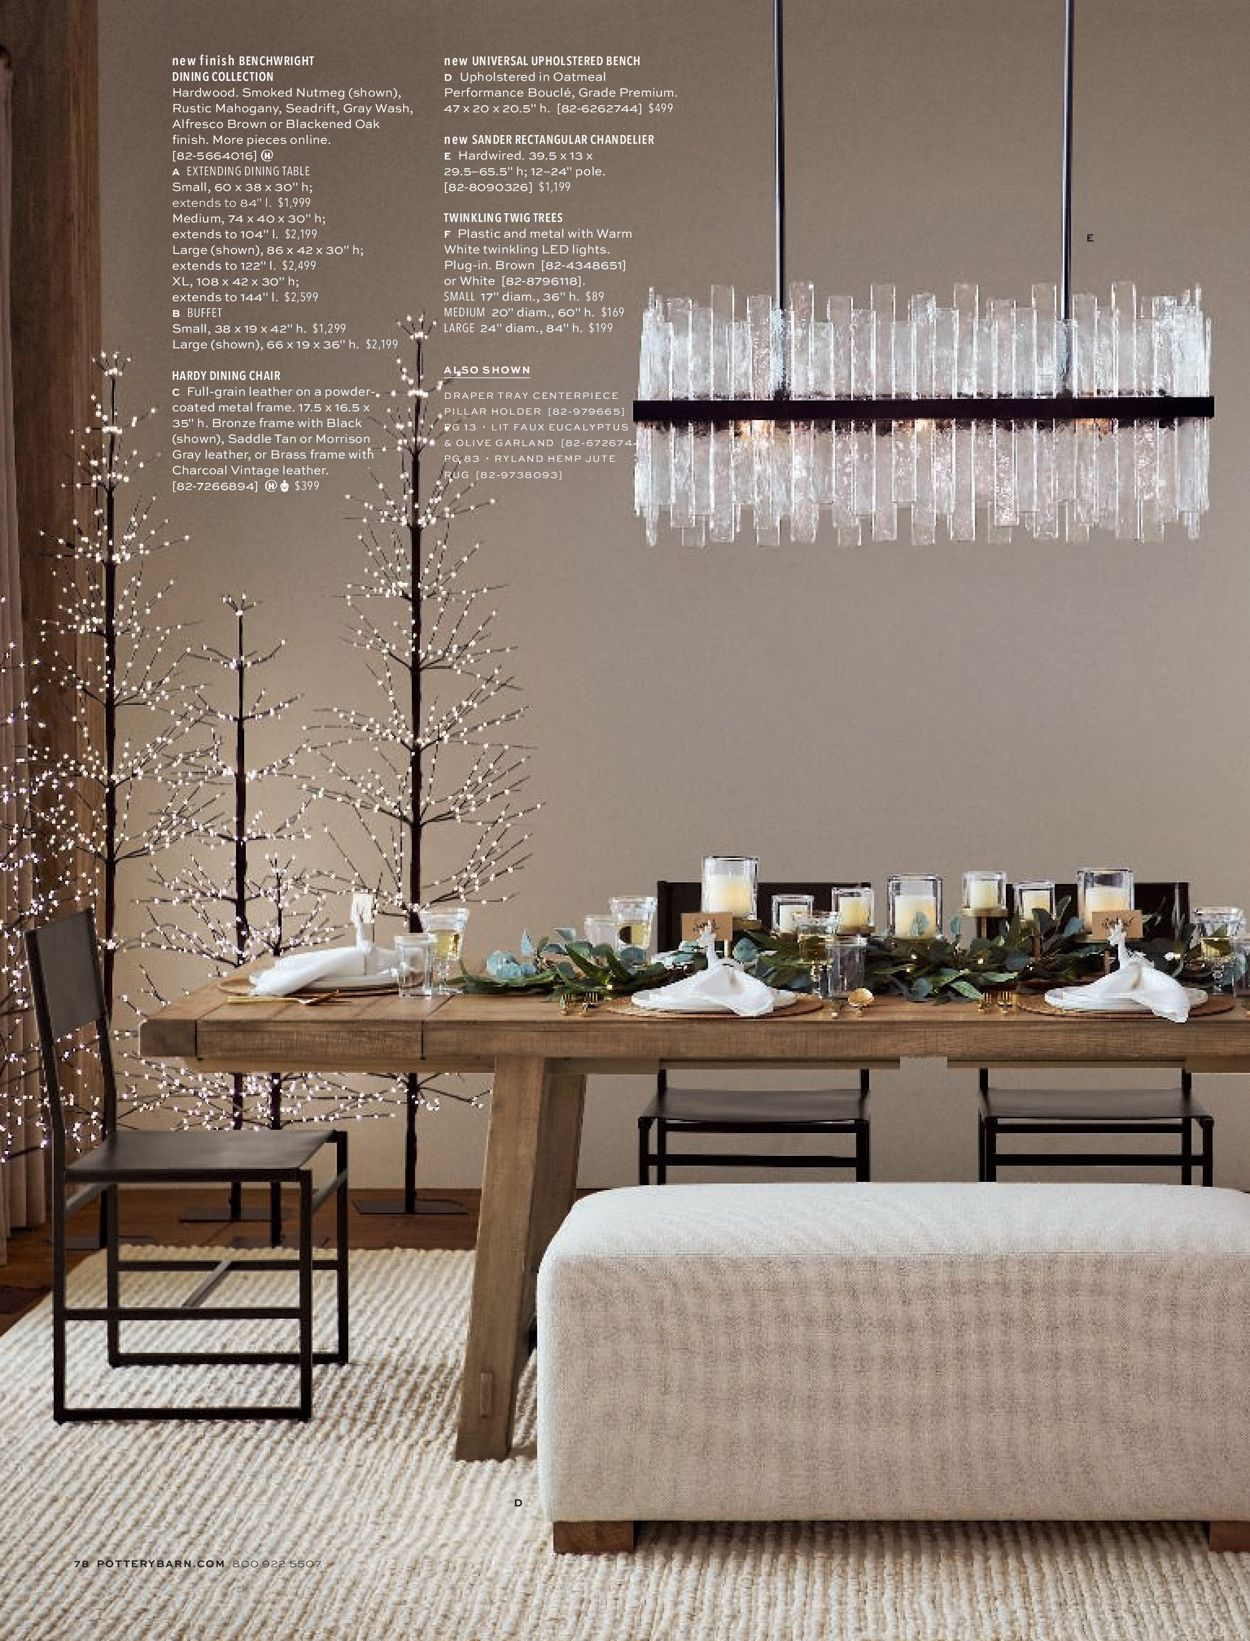 Pottery Barn Holiday 2020 Current Weekly Ad 11 07 12 25 78 Frequent Ads Com